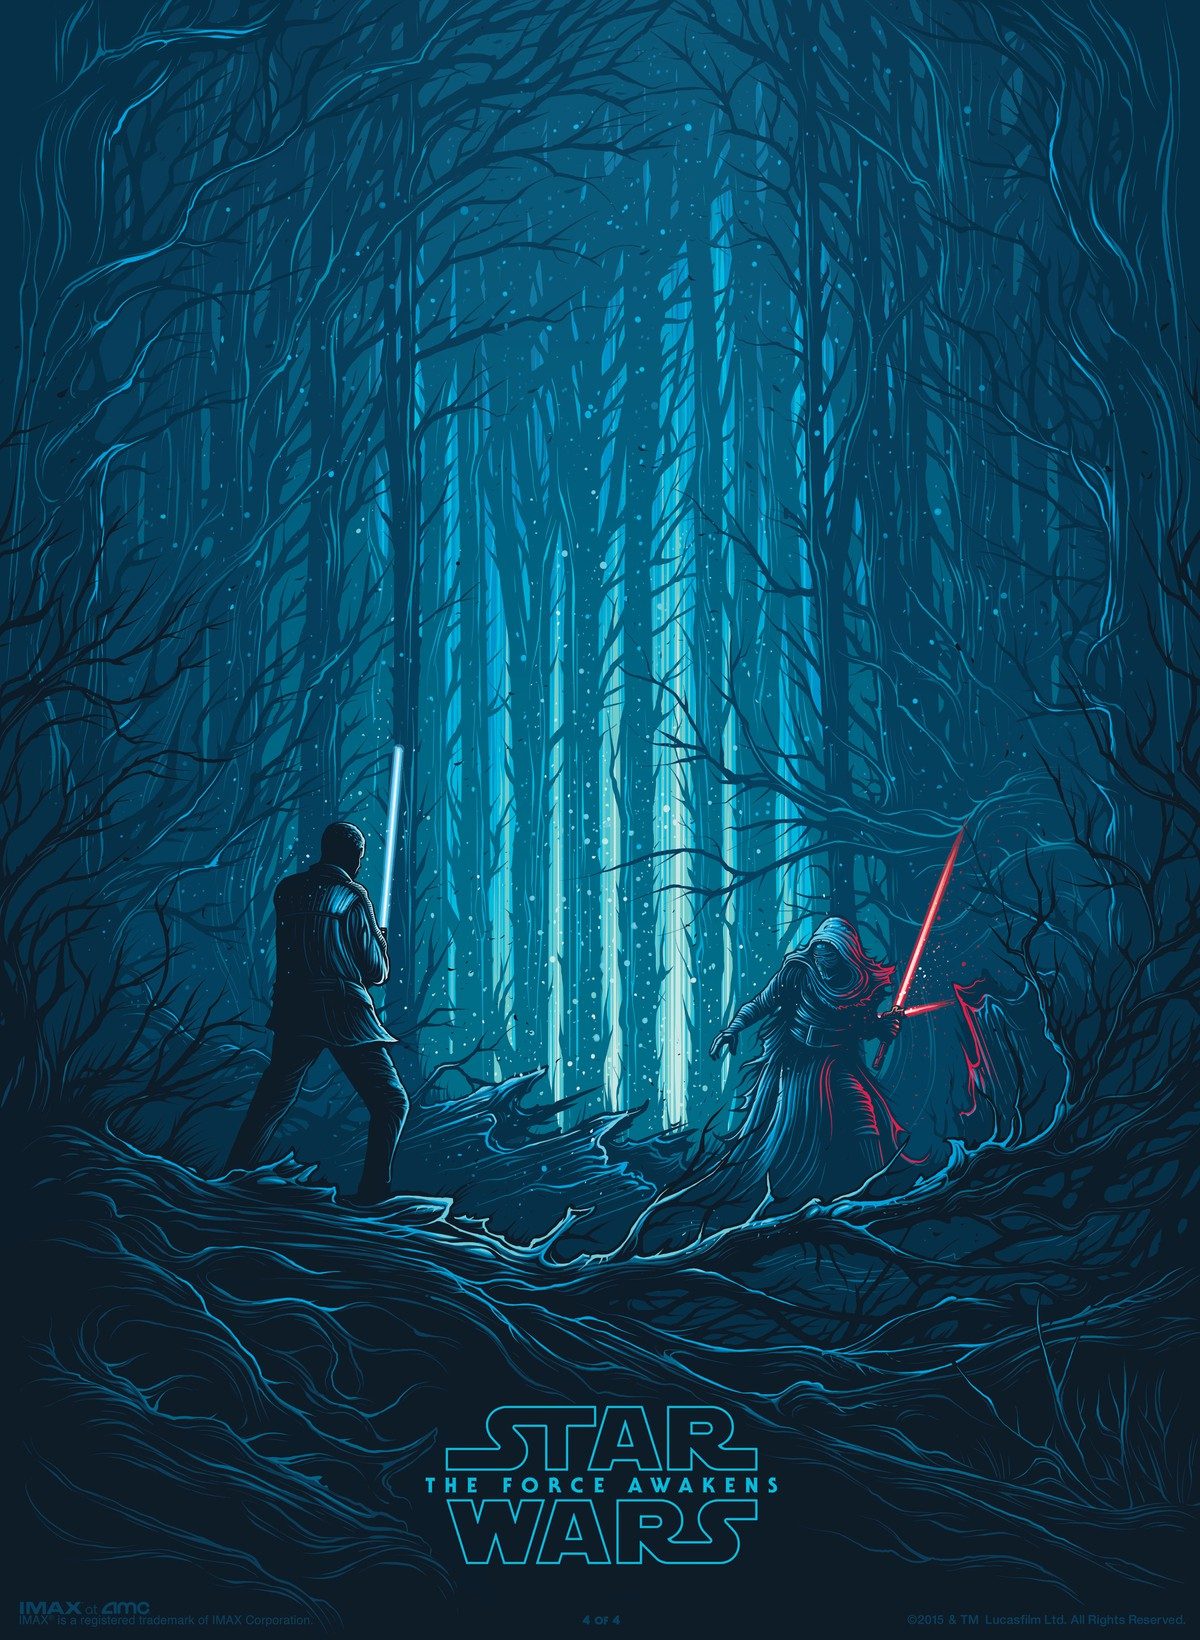 ekm's 31 DAYS OF THE FOURTH: EPISODE 24 – THE FORCE AWAKENS (2015)